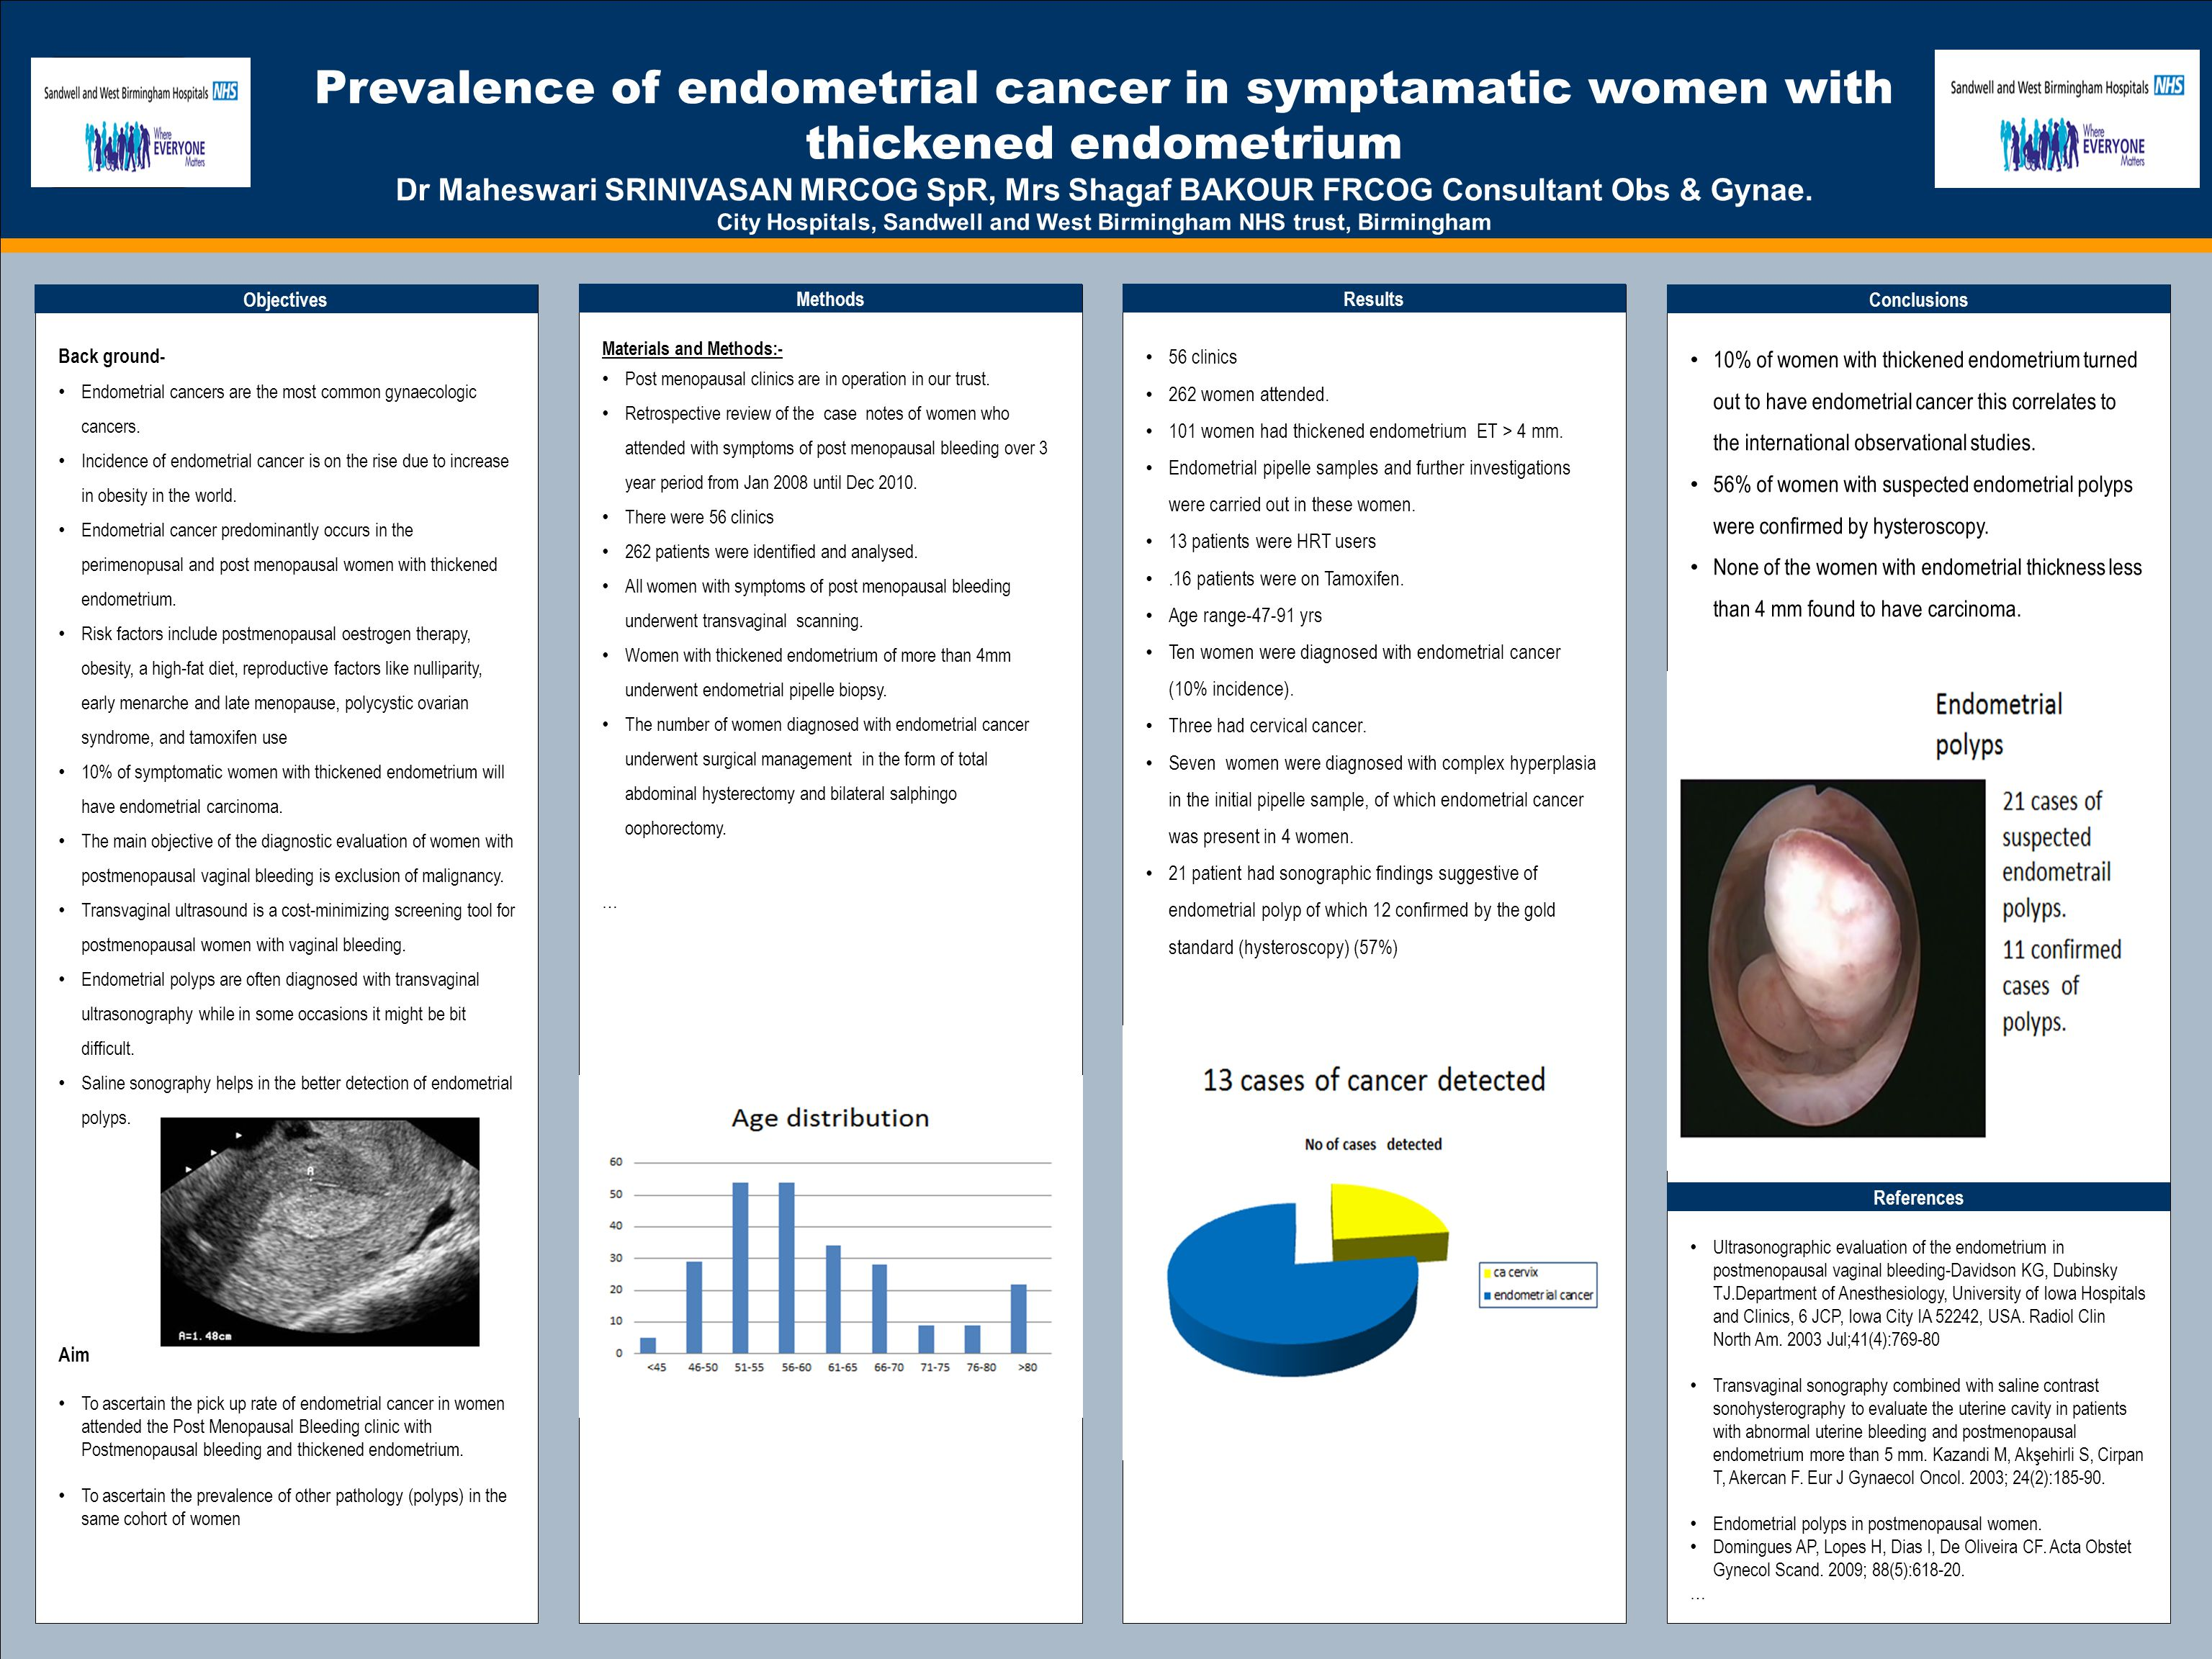 OPTIONAL LOGO HERE Prevalence of endometrial cancer in symptamatic women with thickened endometrium.